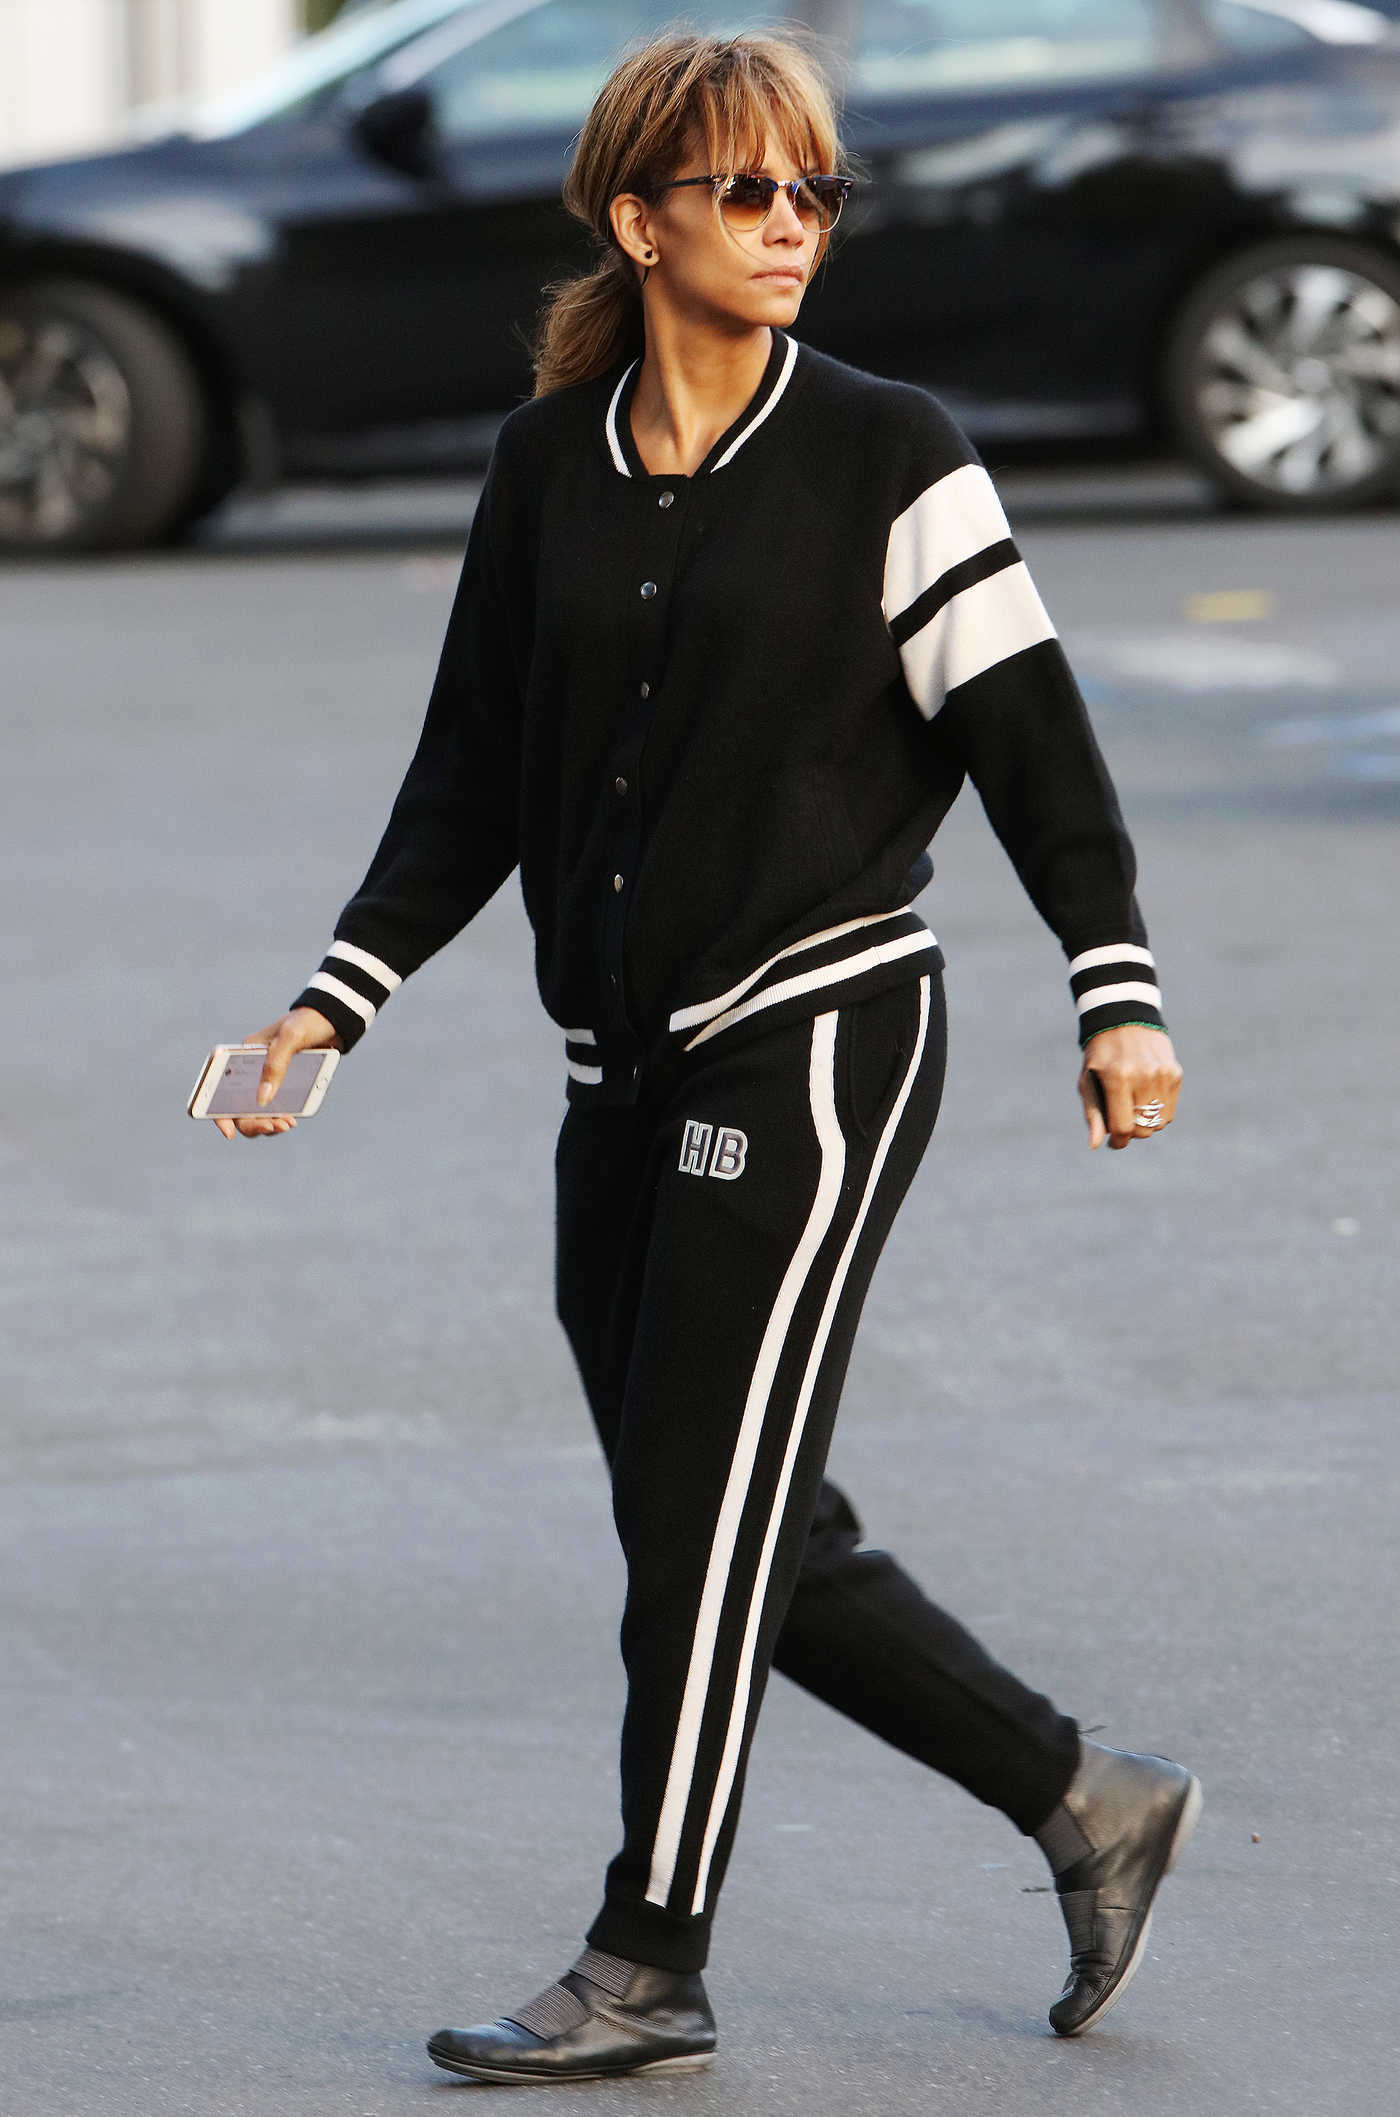 Halle Berry in a Black Jogging Suit Goes Shopping in Beverly Hills 01/03/2019